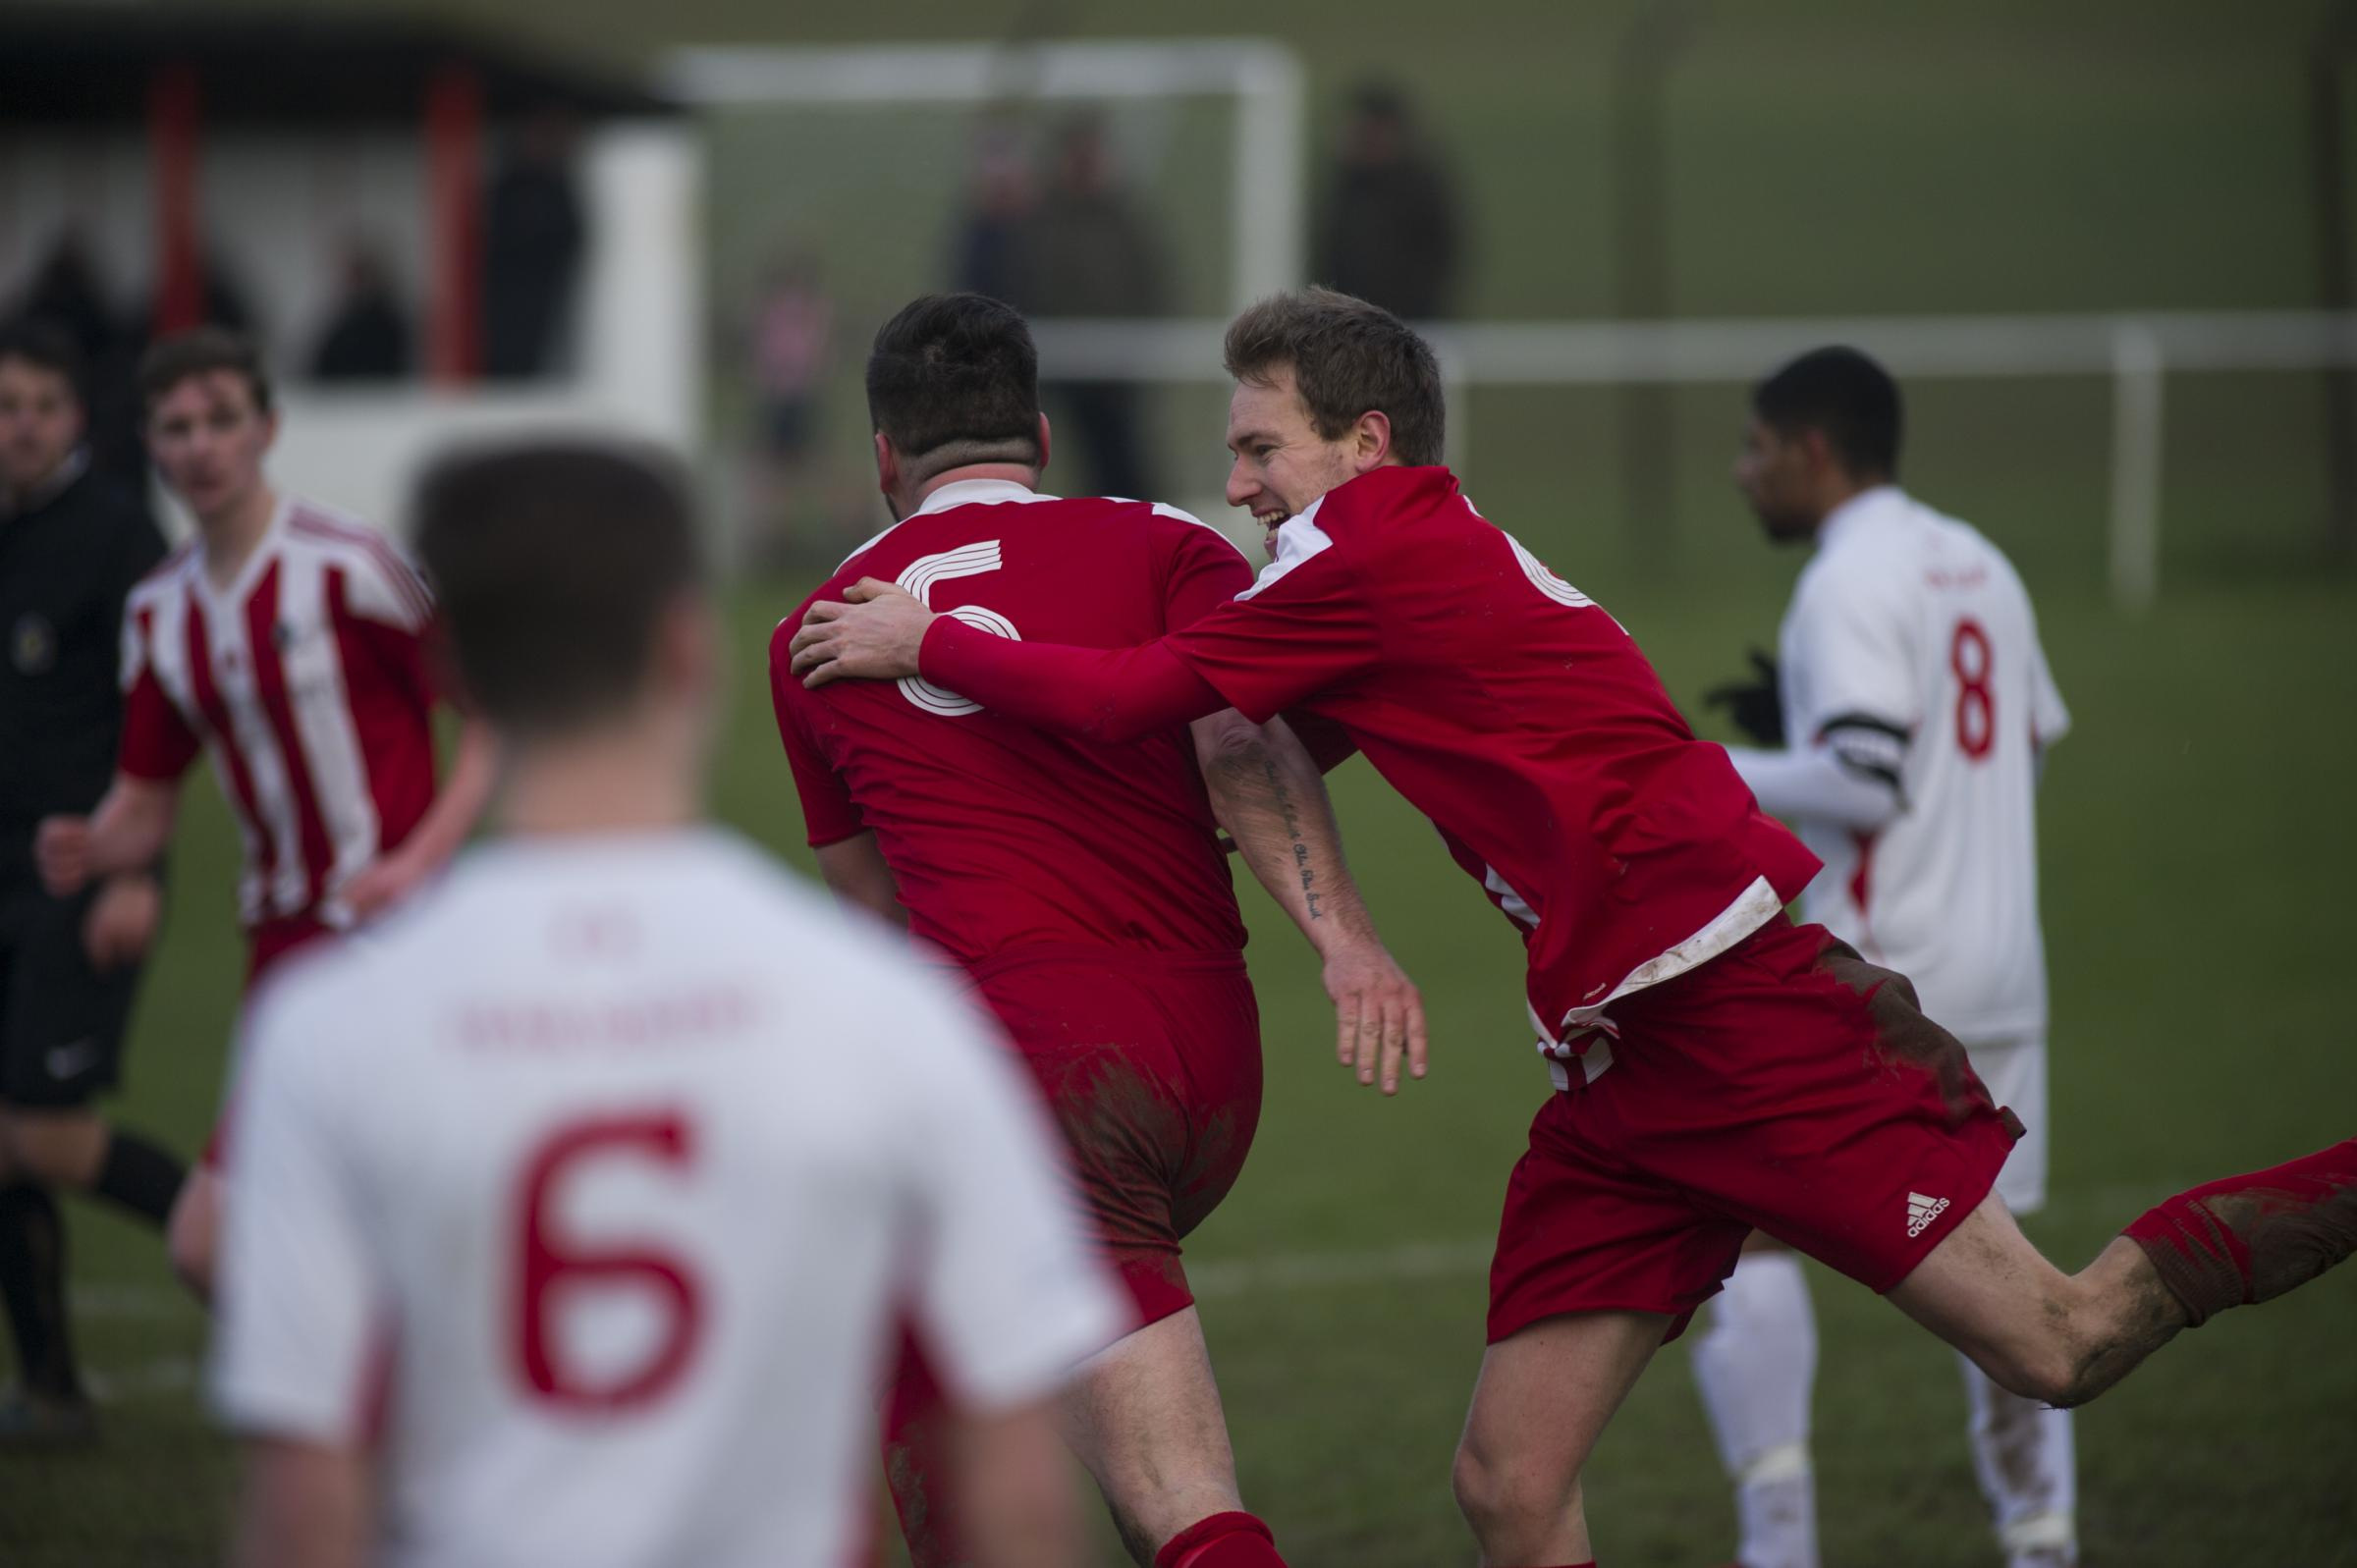 Action from Whitchurch United 2-2 draw with Team Solent - One of the four games in our gallery